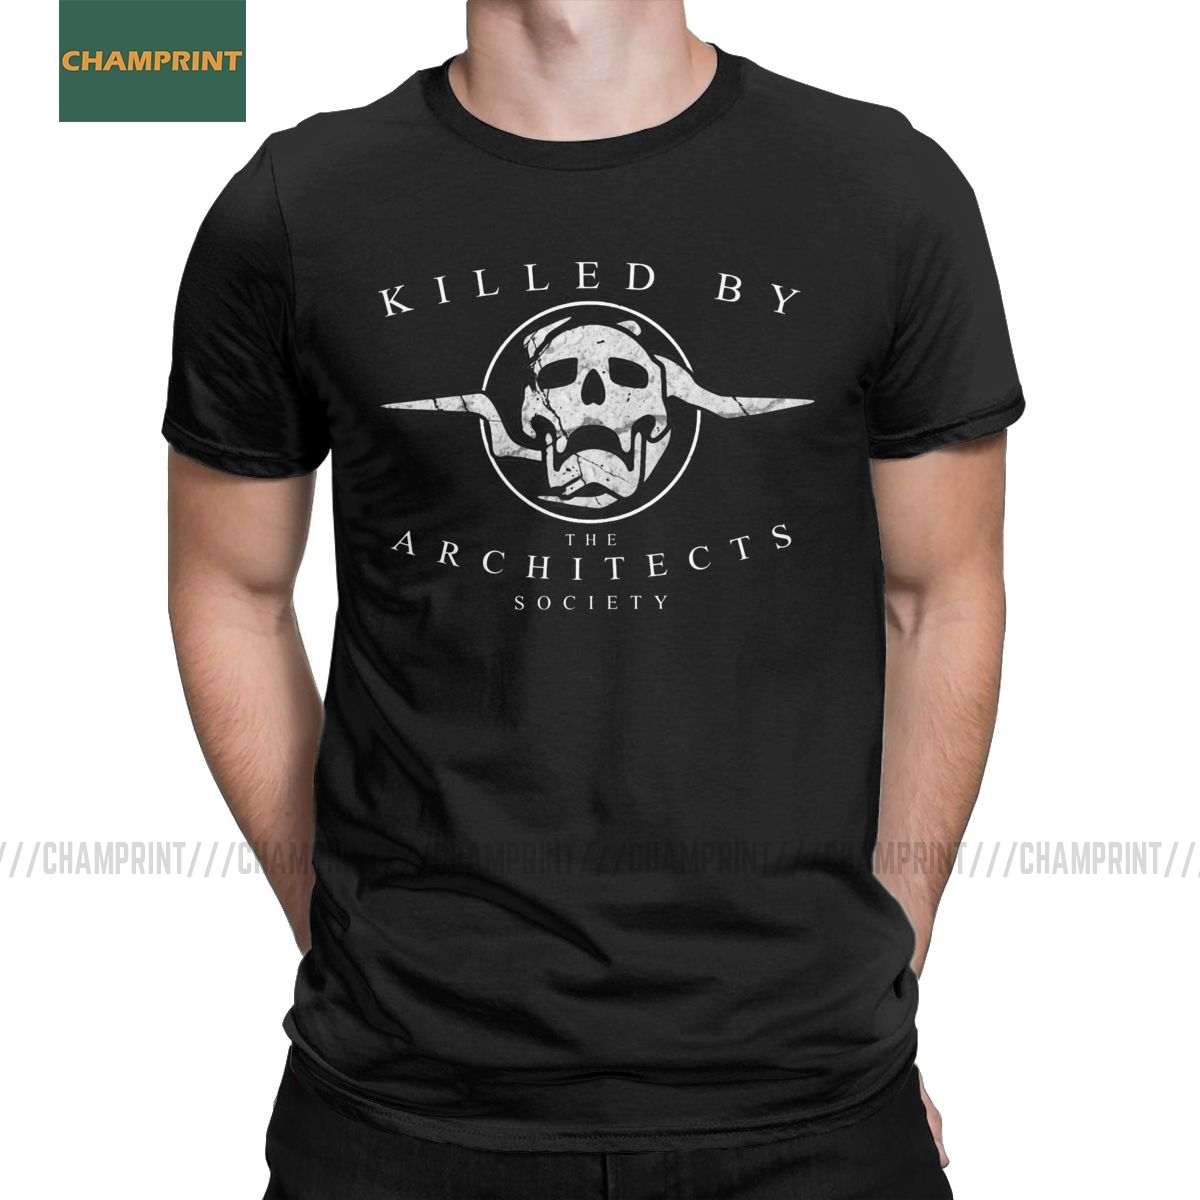 Killed By The Architects Society Destiny T-Shirt Men Cotton T Shirt Ace Spades Cayde 6 Game Short Sleeve Tee Shirt Gift Idea Top